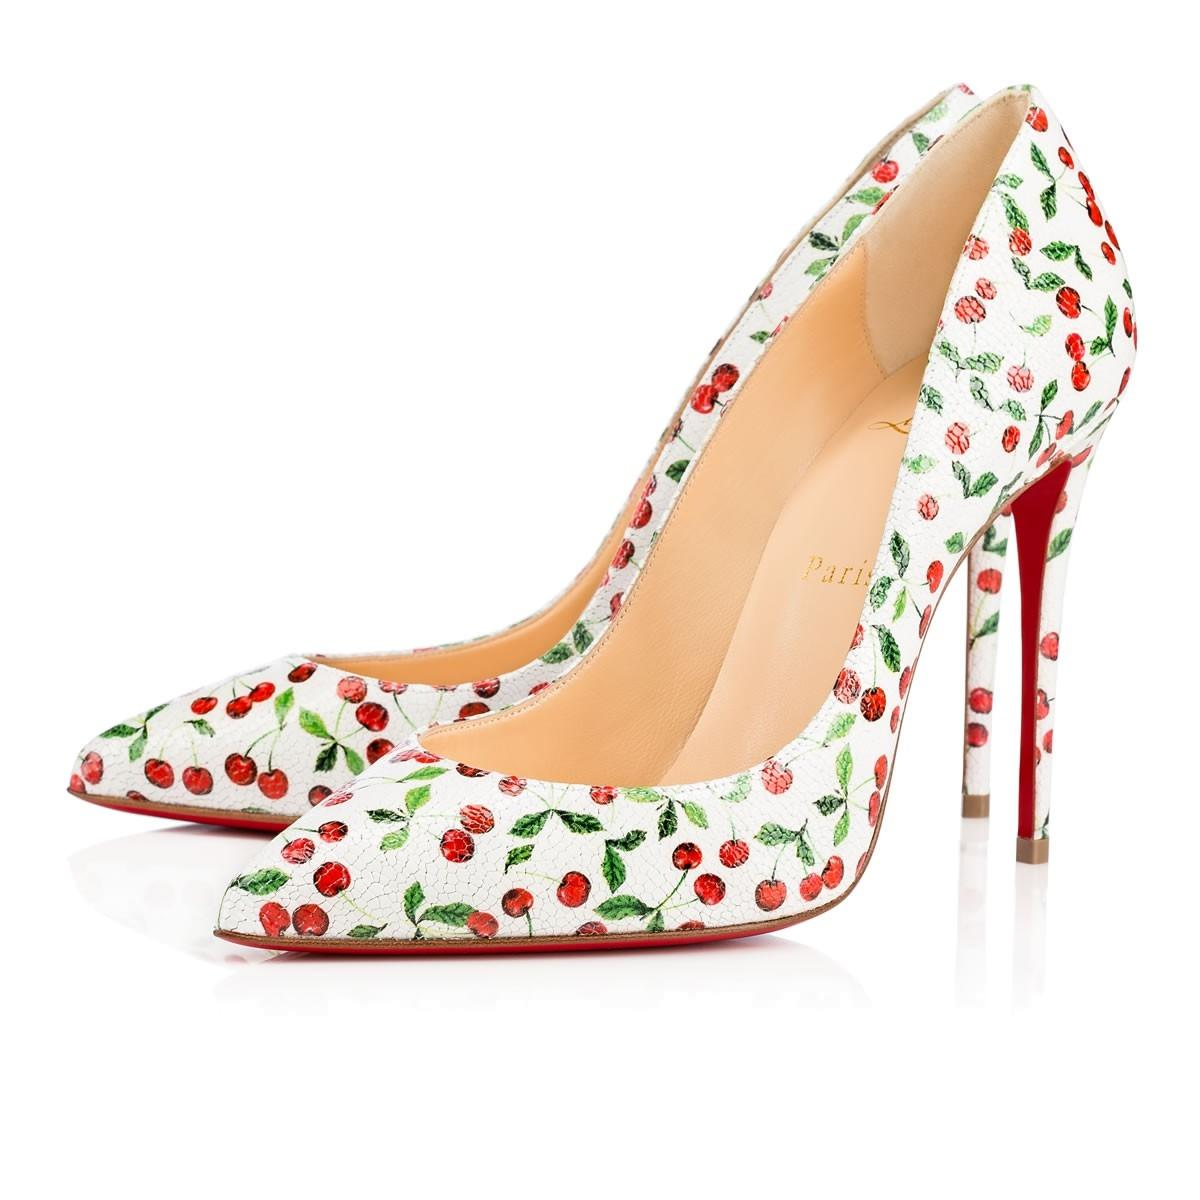 fd17b698c7 Christian Louboutin Louboutin Louboutin White Classic Pigalle Follies 100mm  Red Cherry Print Heel Sz. Euro